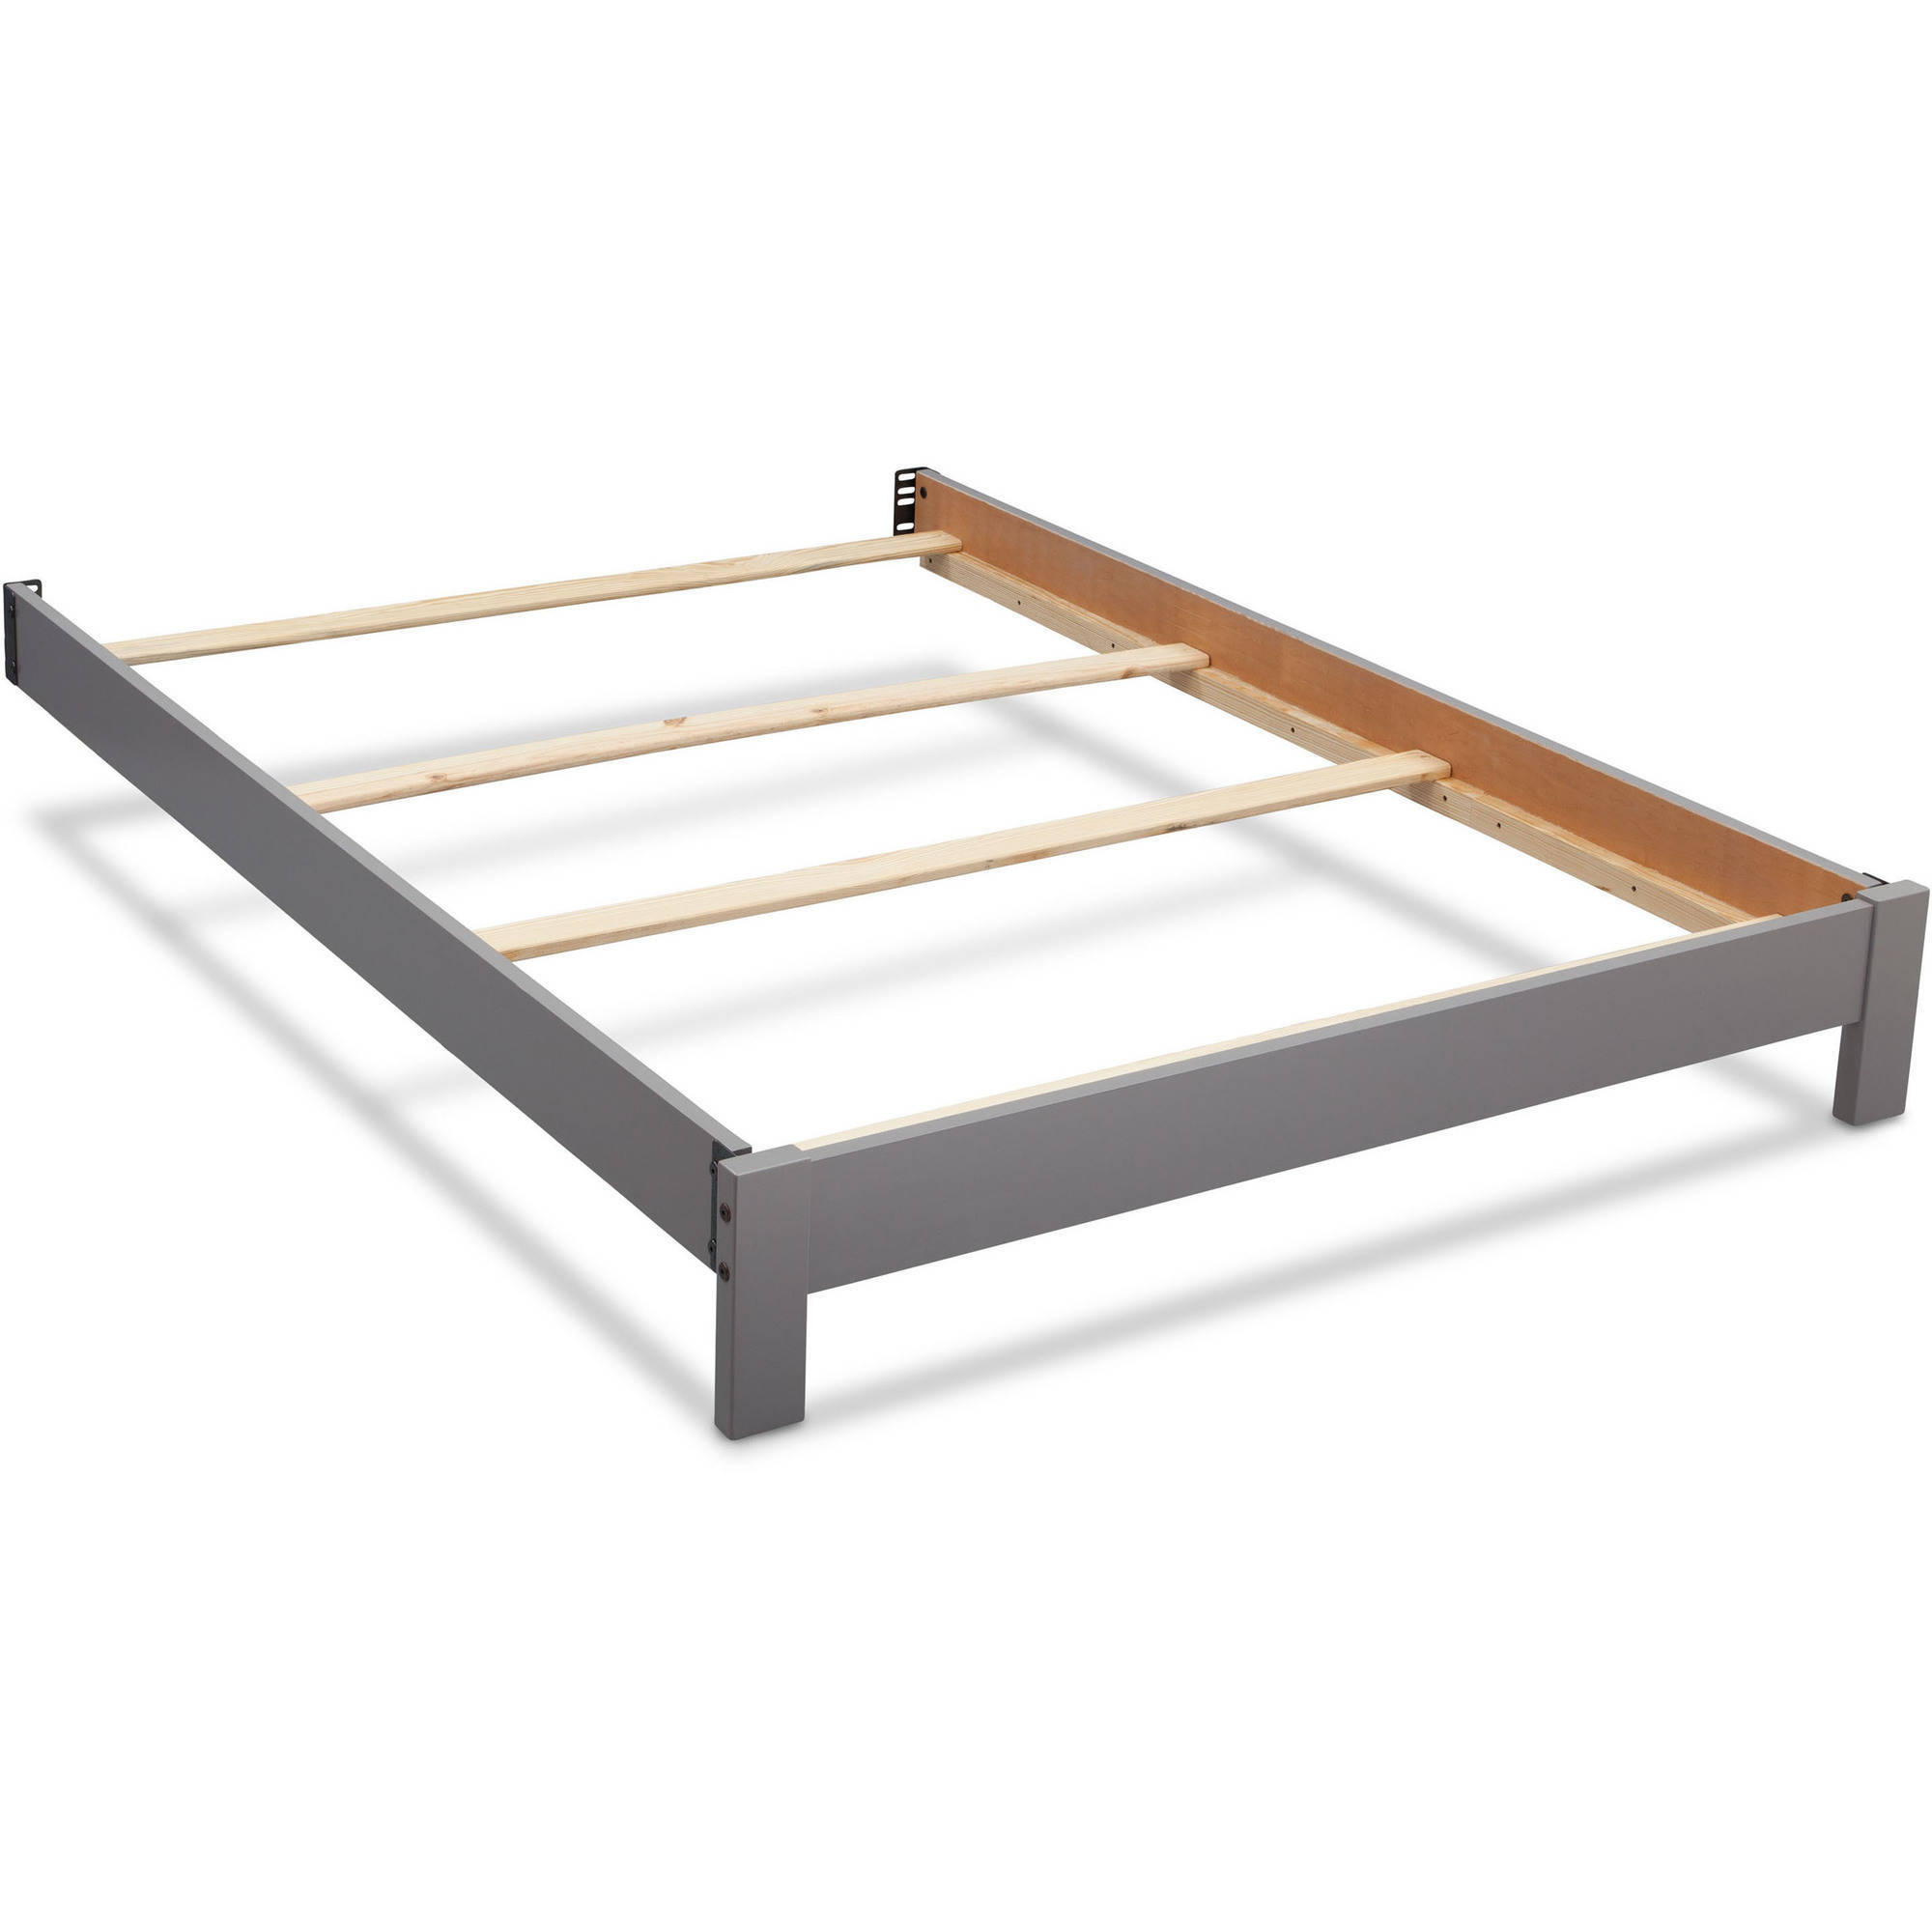 Serta Full Size Platform Bed Conversion Kit #700850